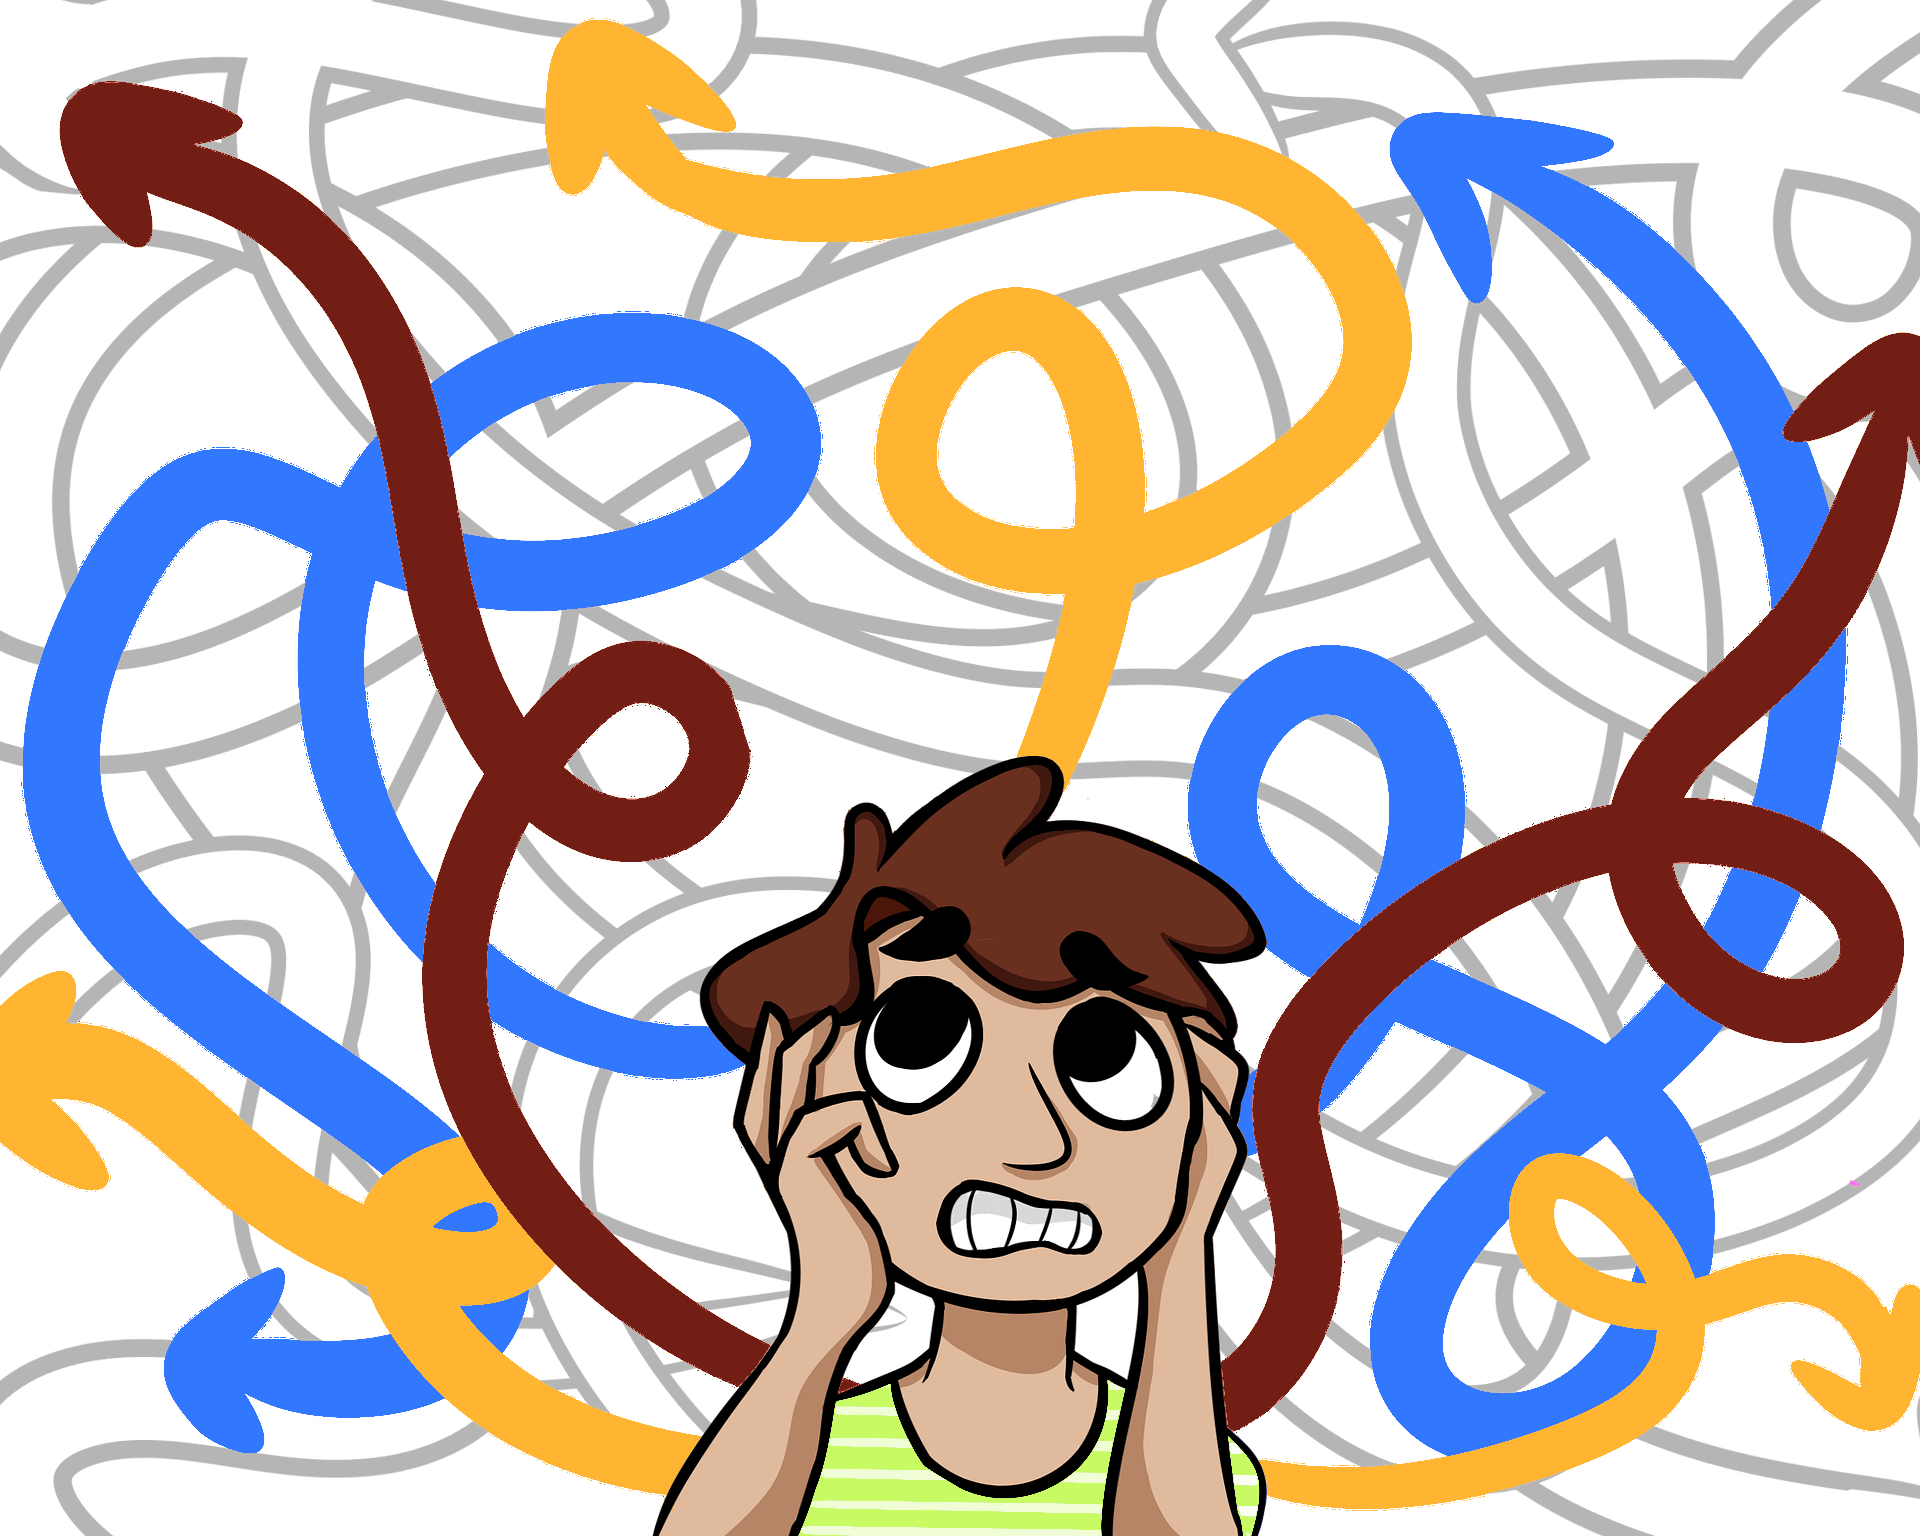 Person surrounded by many confusing coloured arrows